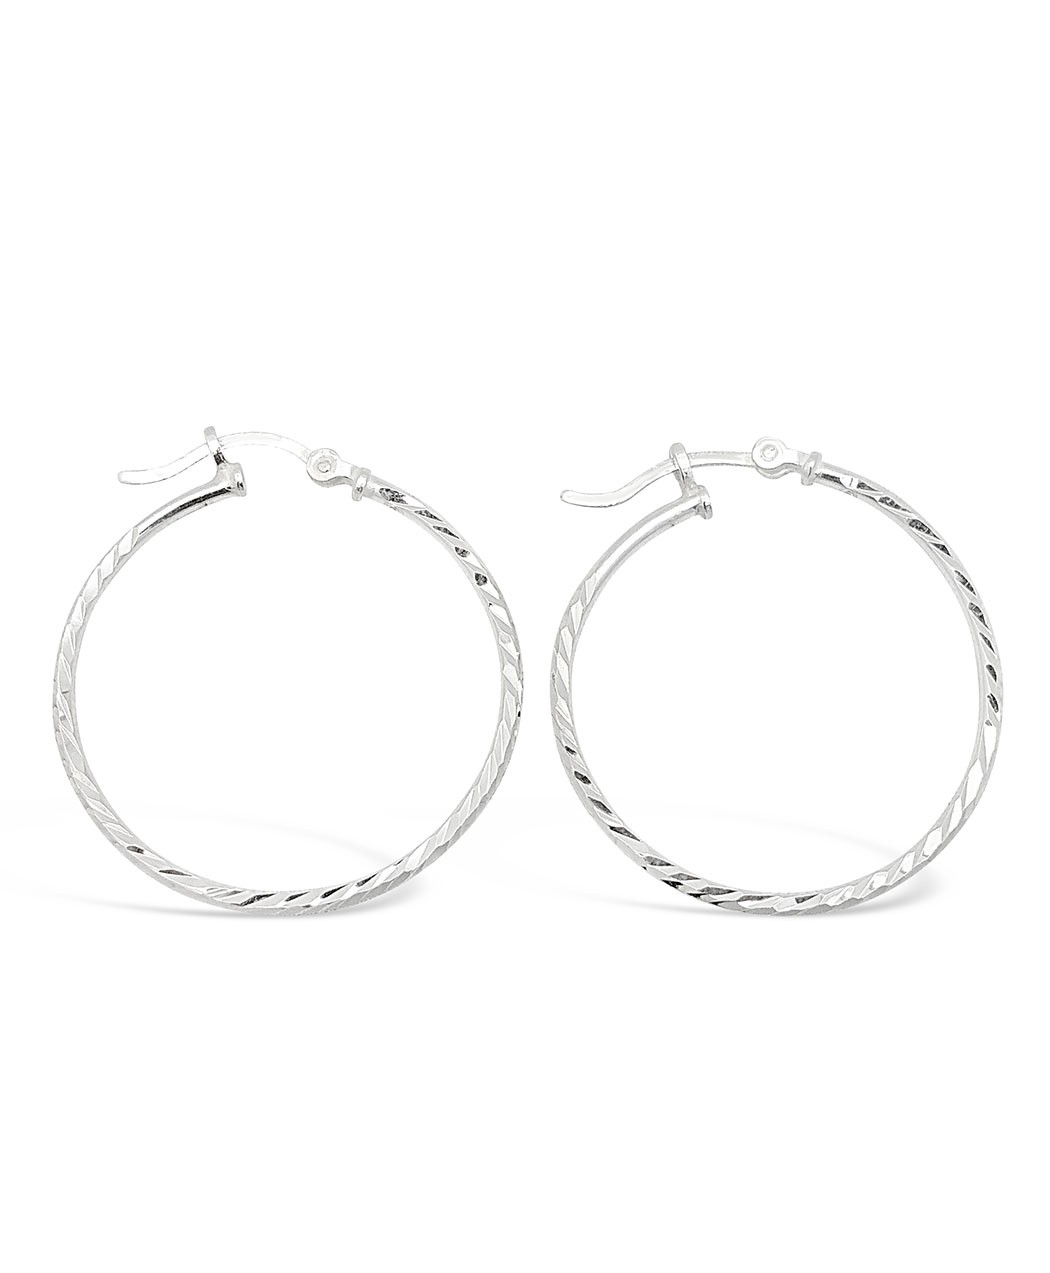 Hammered Sterling Silver Hoop Earrings 1